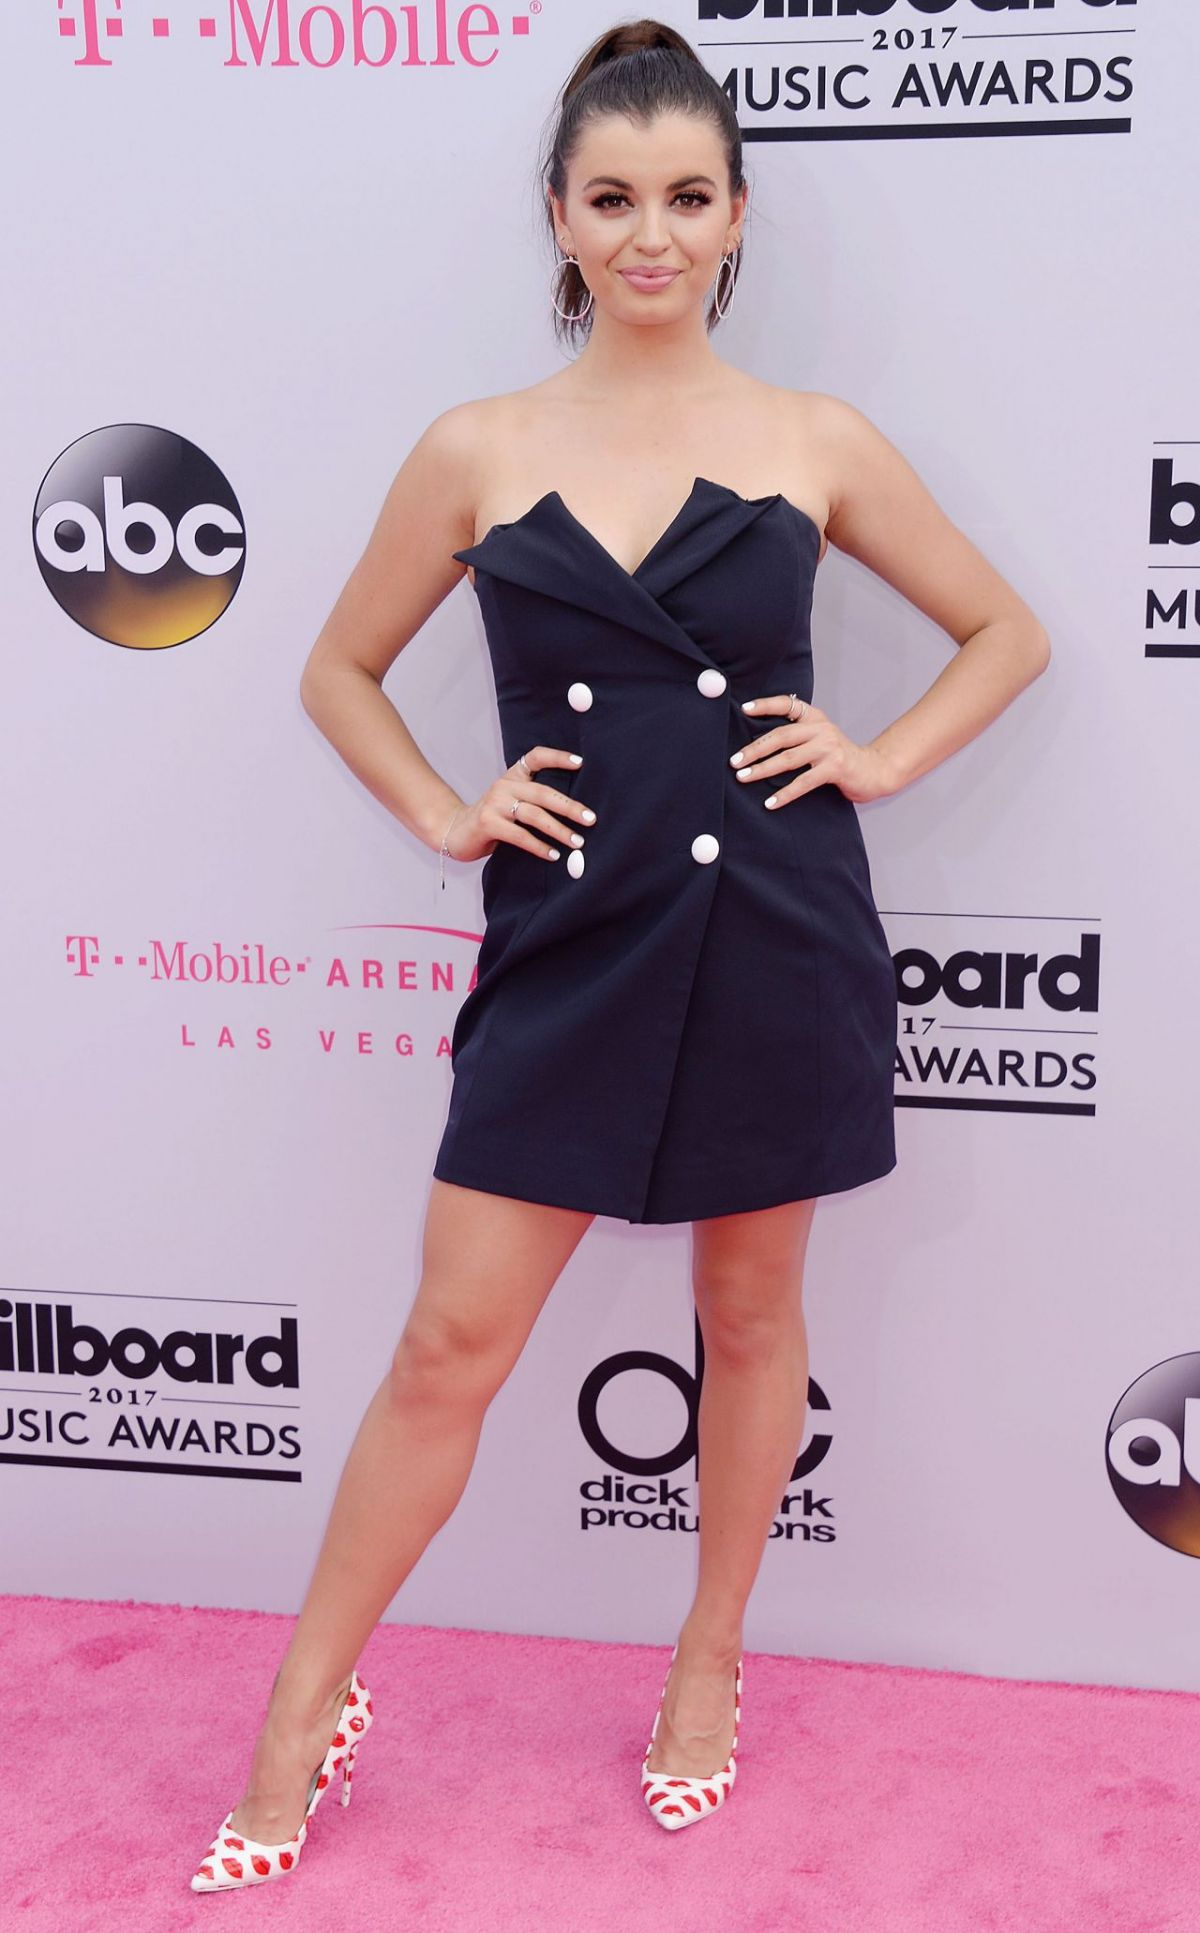 REBECCA BLACK at Billboard Music Awards 2017 in Las Vegas 05/21/2017